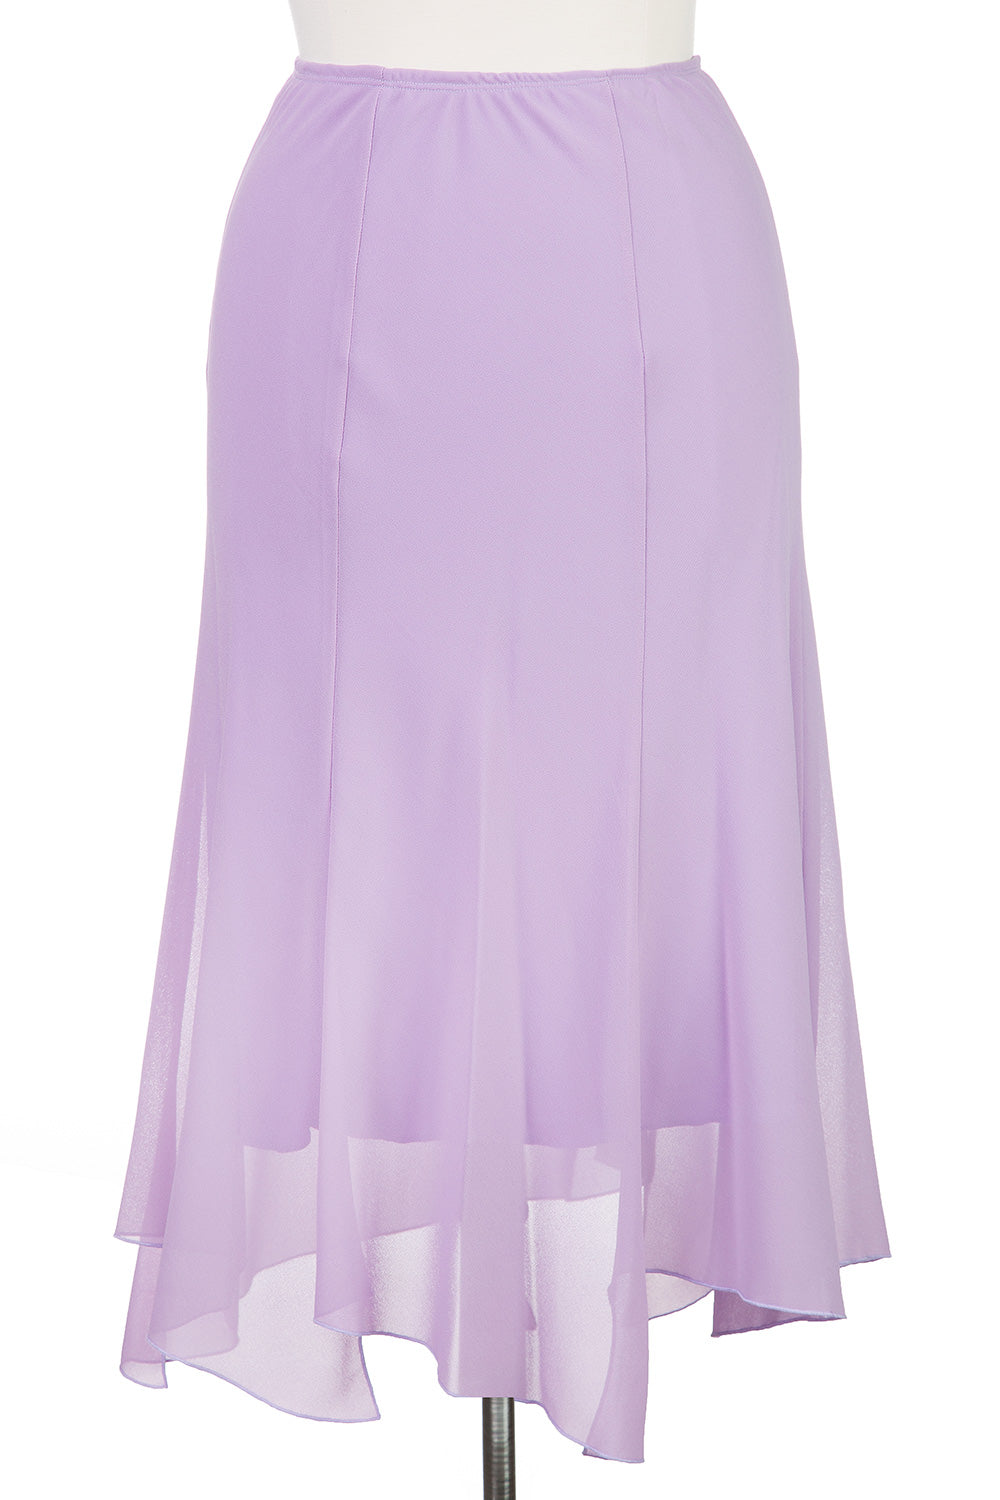 Type 2 The Short and Long of It Skirt in Lilac